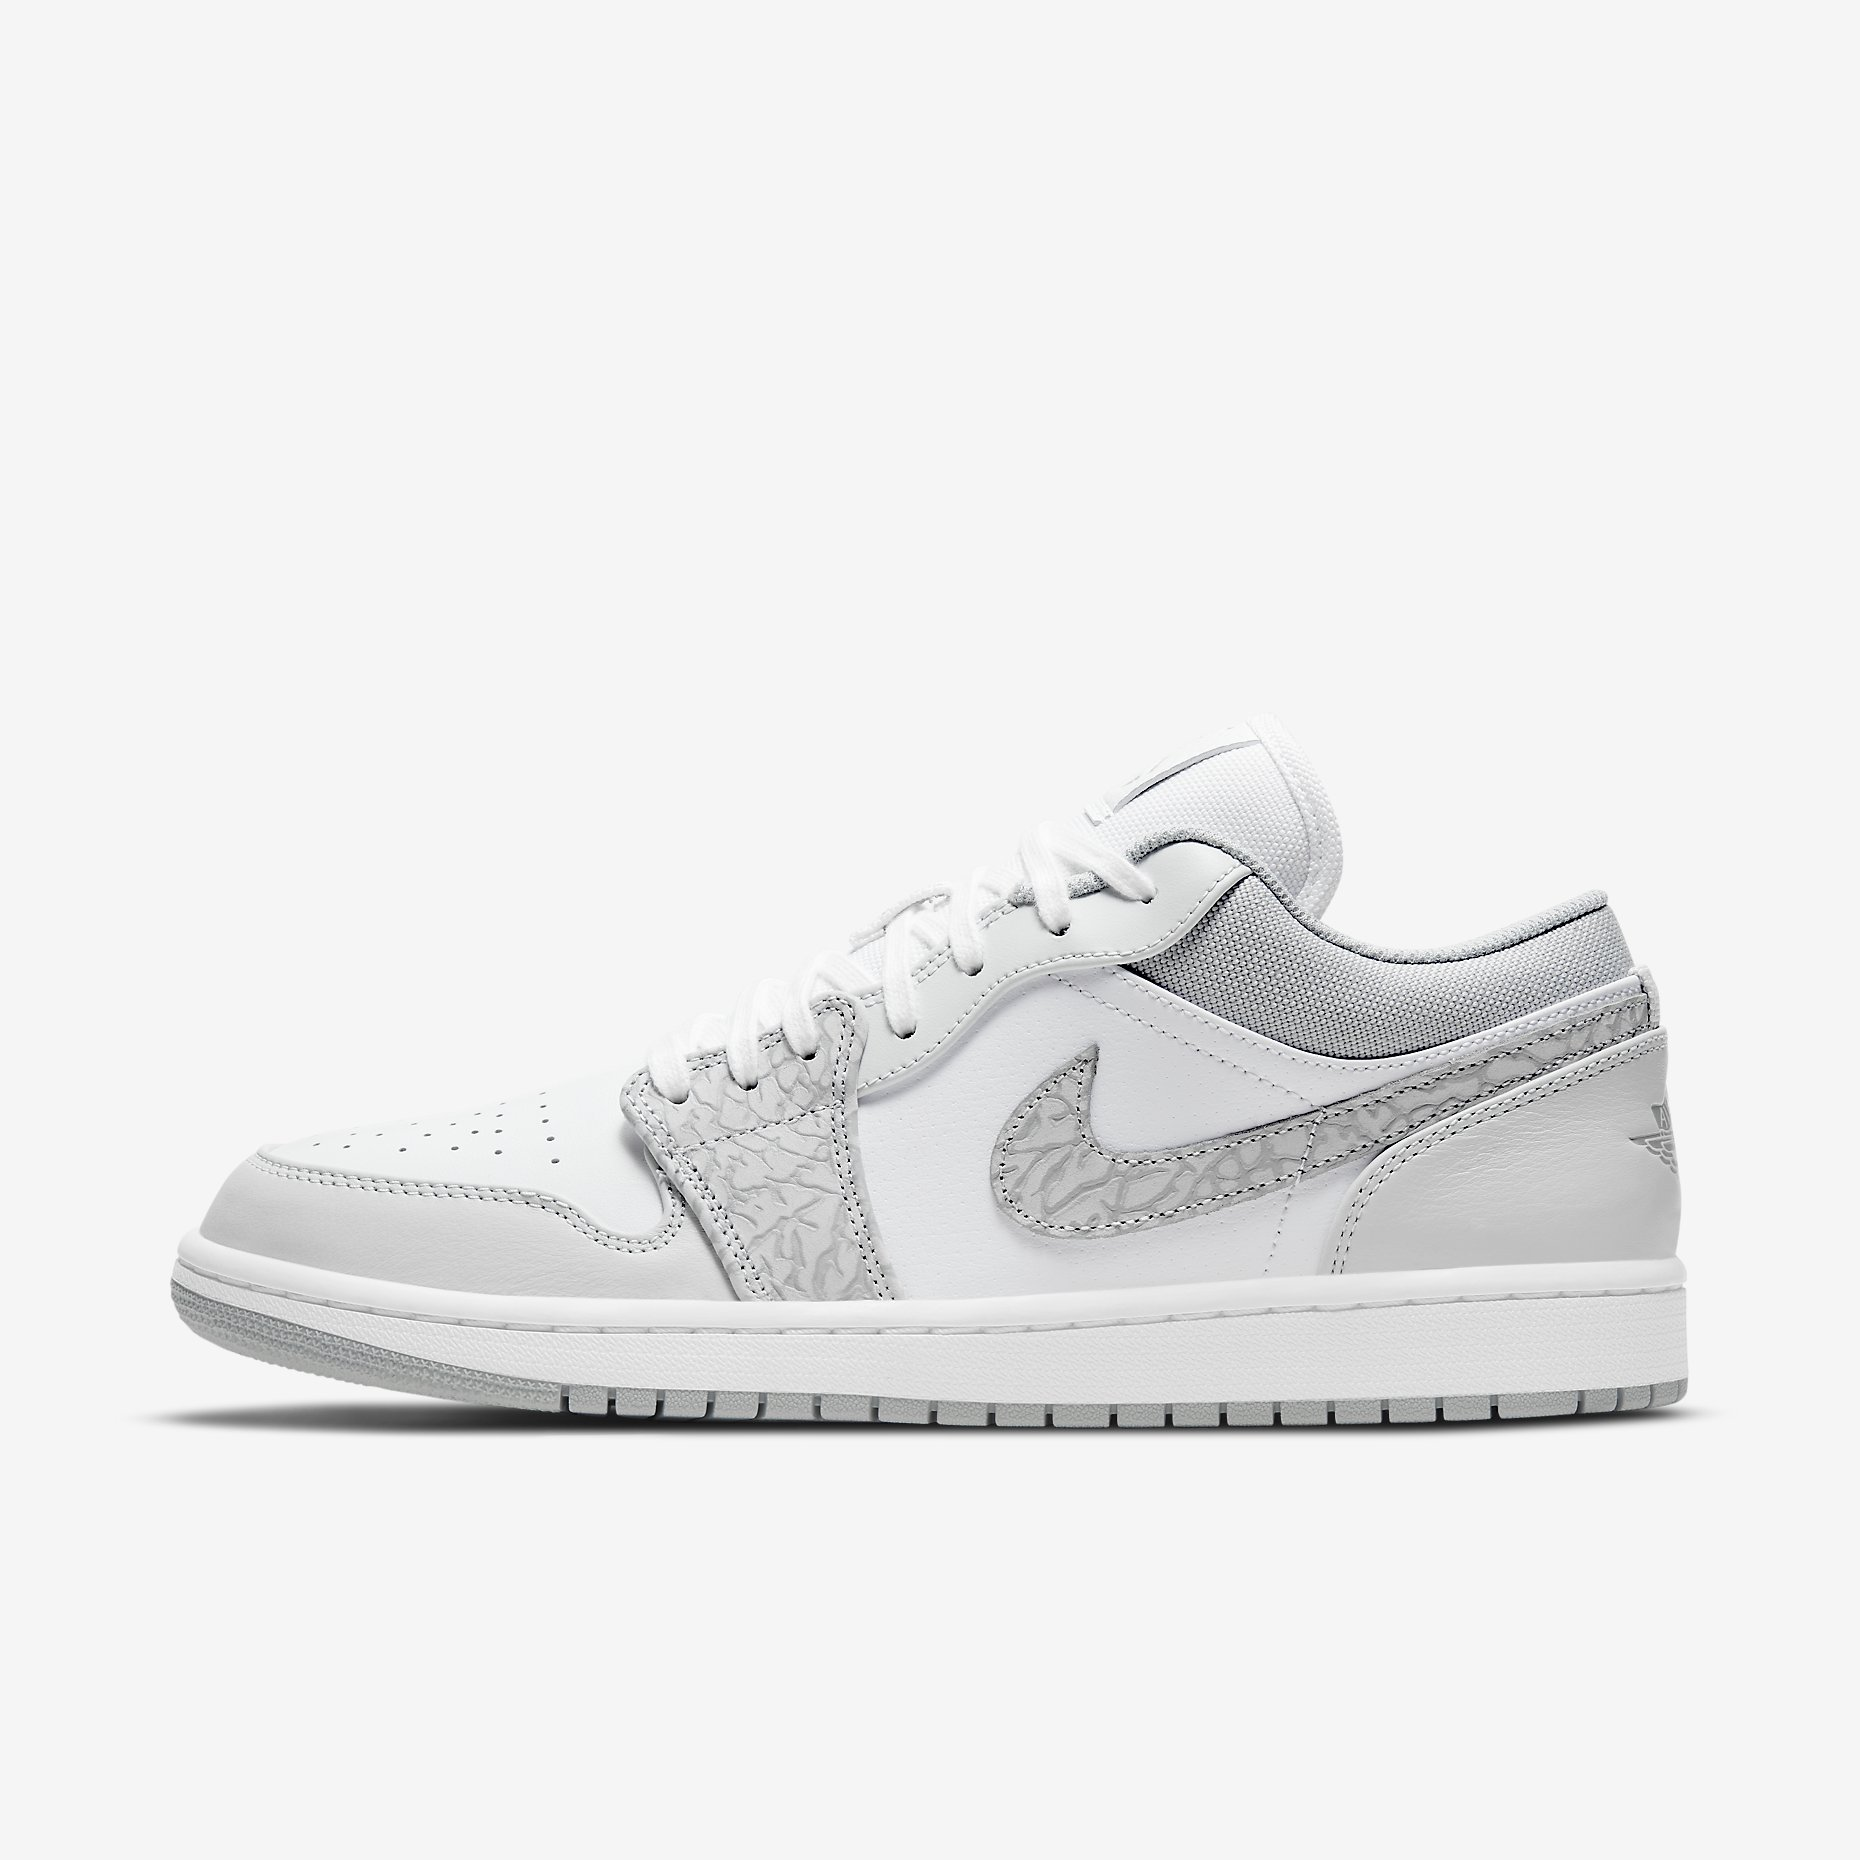 Air Jordan 1 Low PRM 'Berlin Grey'}